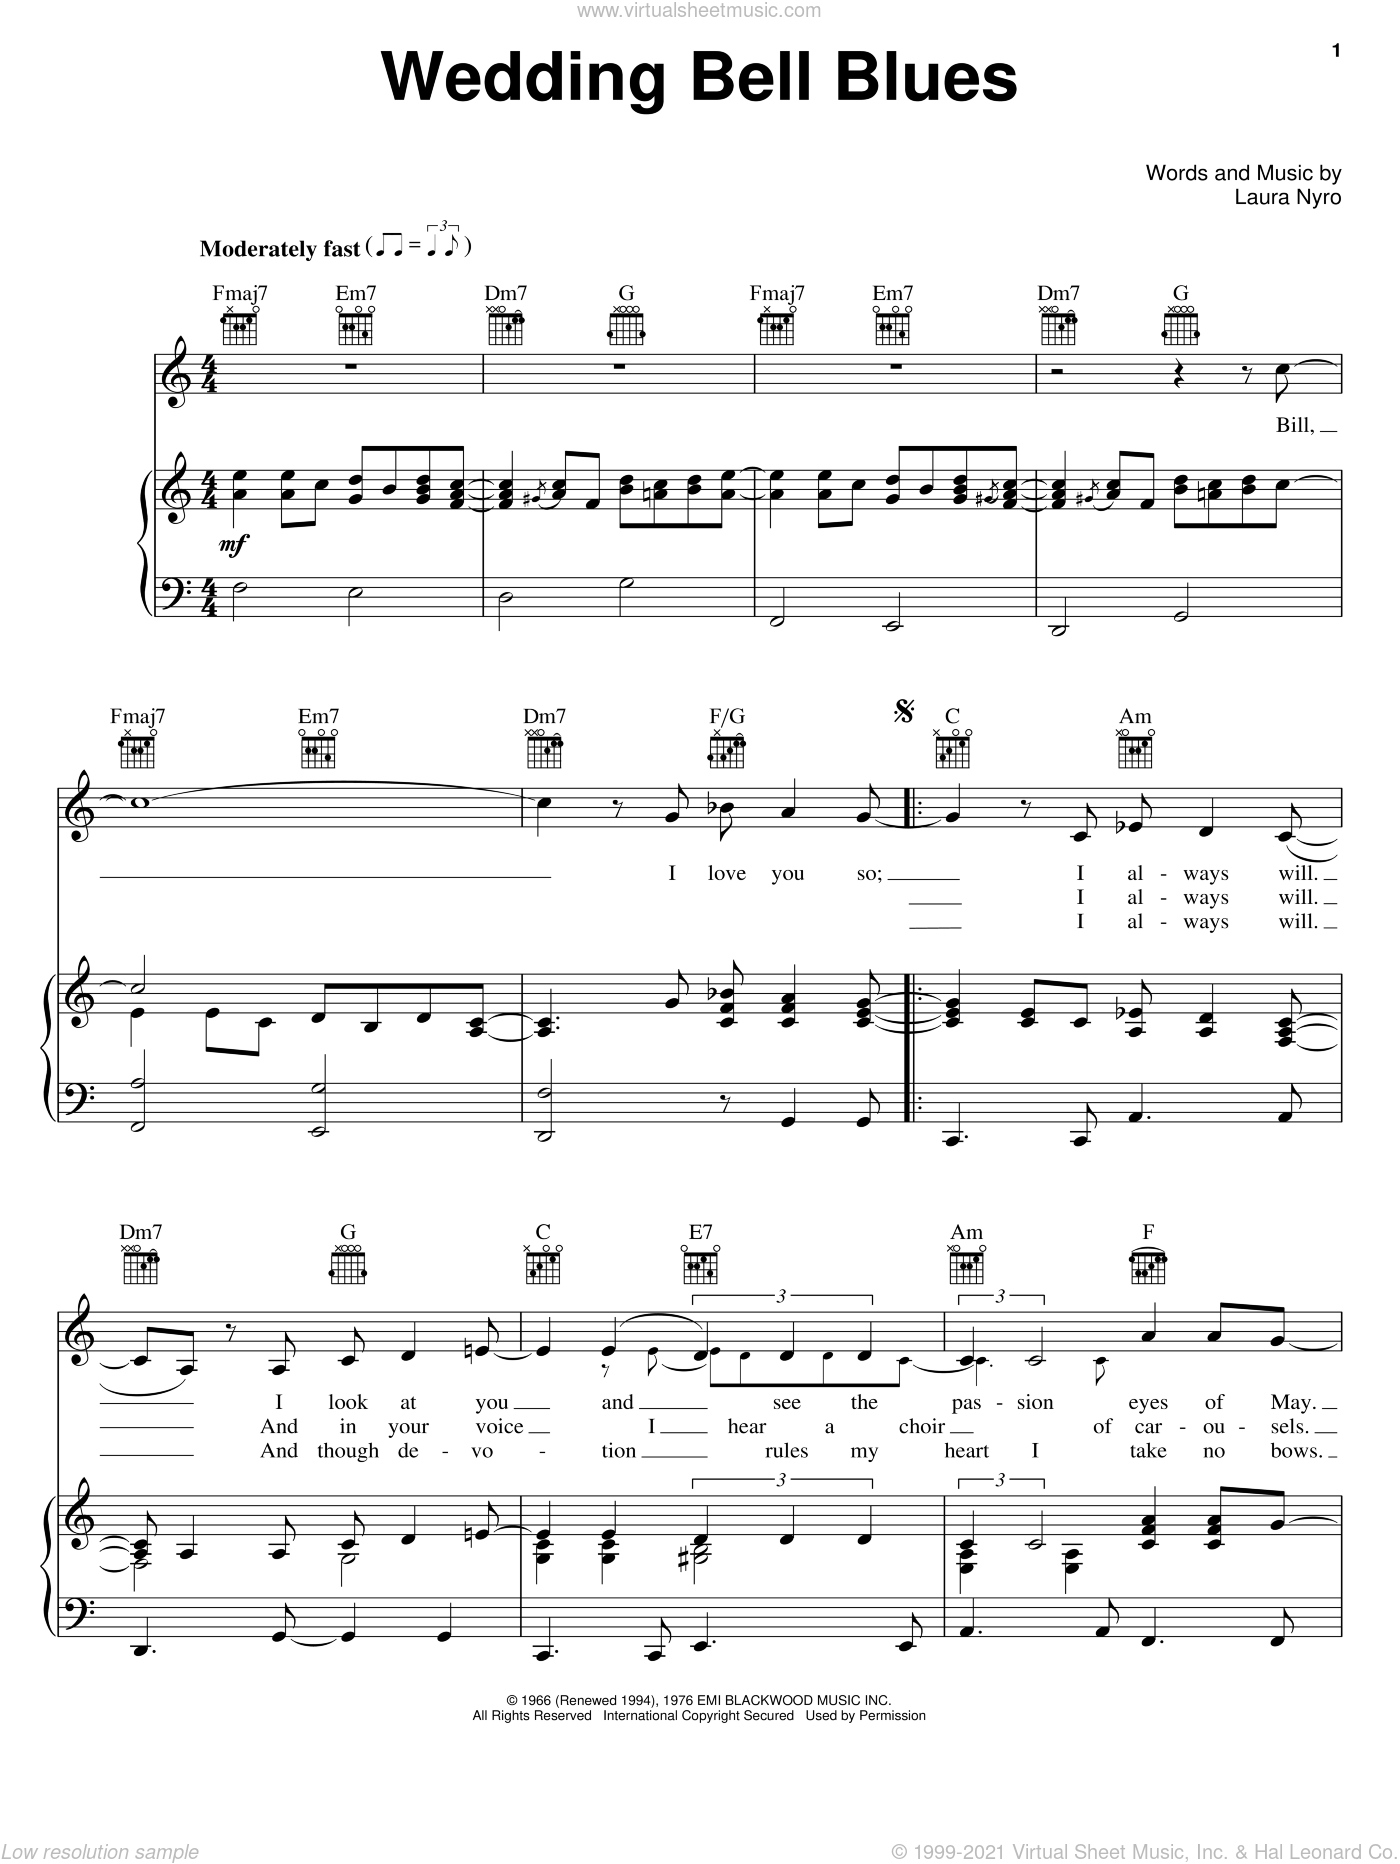 Wedding Bell Blues sheet music for voice, piano or guitar by Laura Nyro